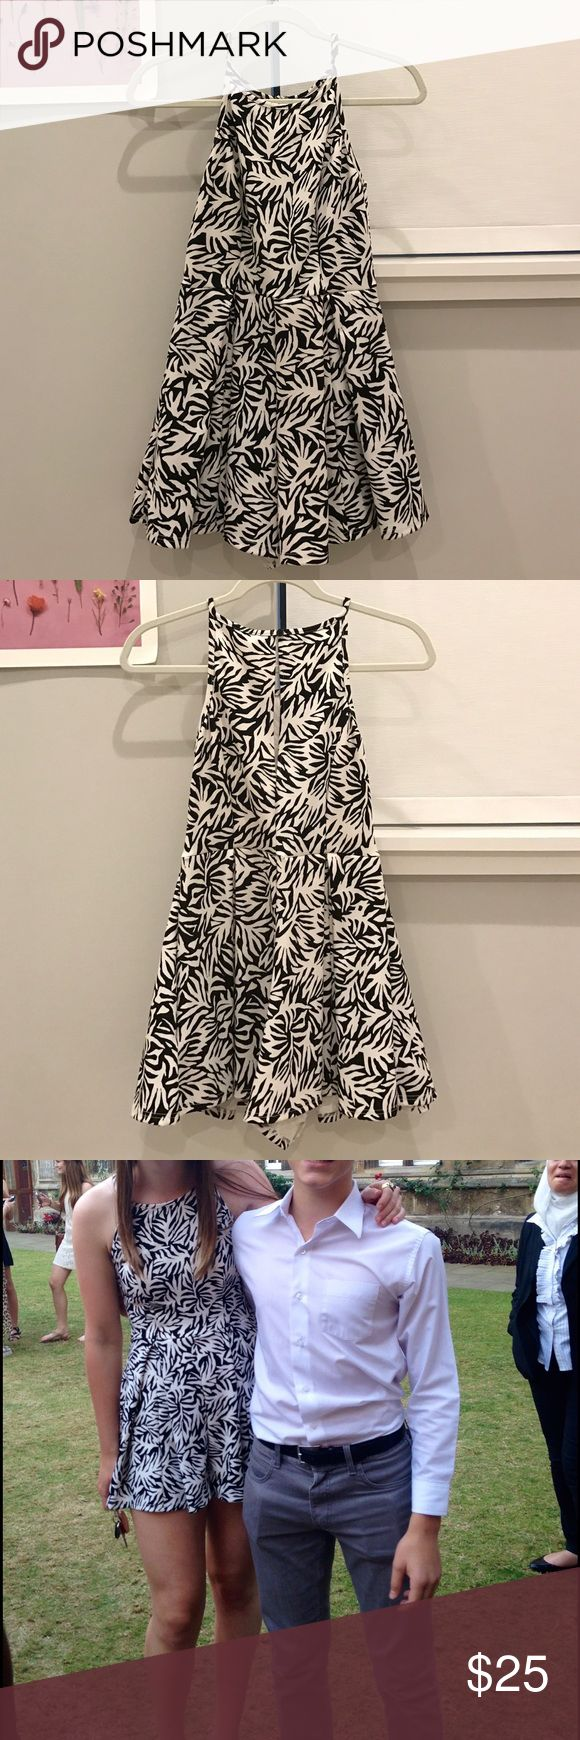 """TOPSHOP Petite Patterned Romper Only worn twice!! Fun and playful black & white print romper from TOPSHOP Petite collection. It is in petite sizing but it fit me well (I am 5'6"""" and do not usually wear petite sizes). Super cute outfit that can be dressed up or down! Topshop PETITE Pants Jumpsuits & Rompers"""